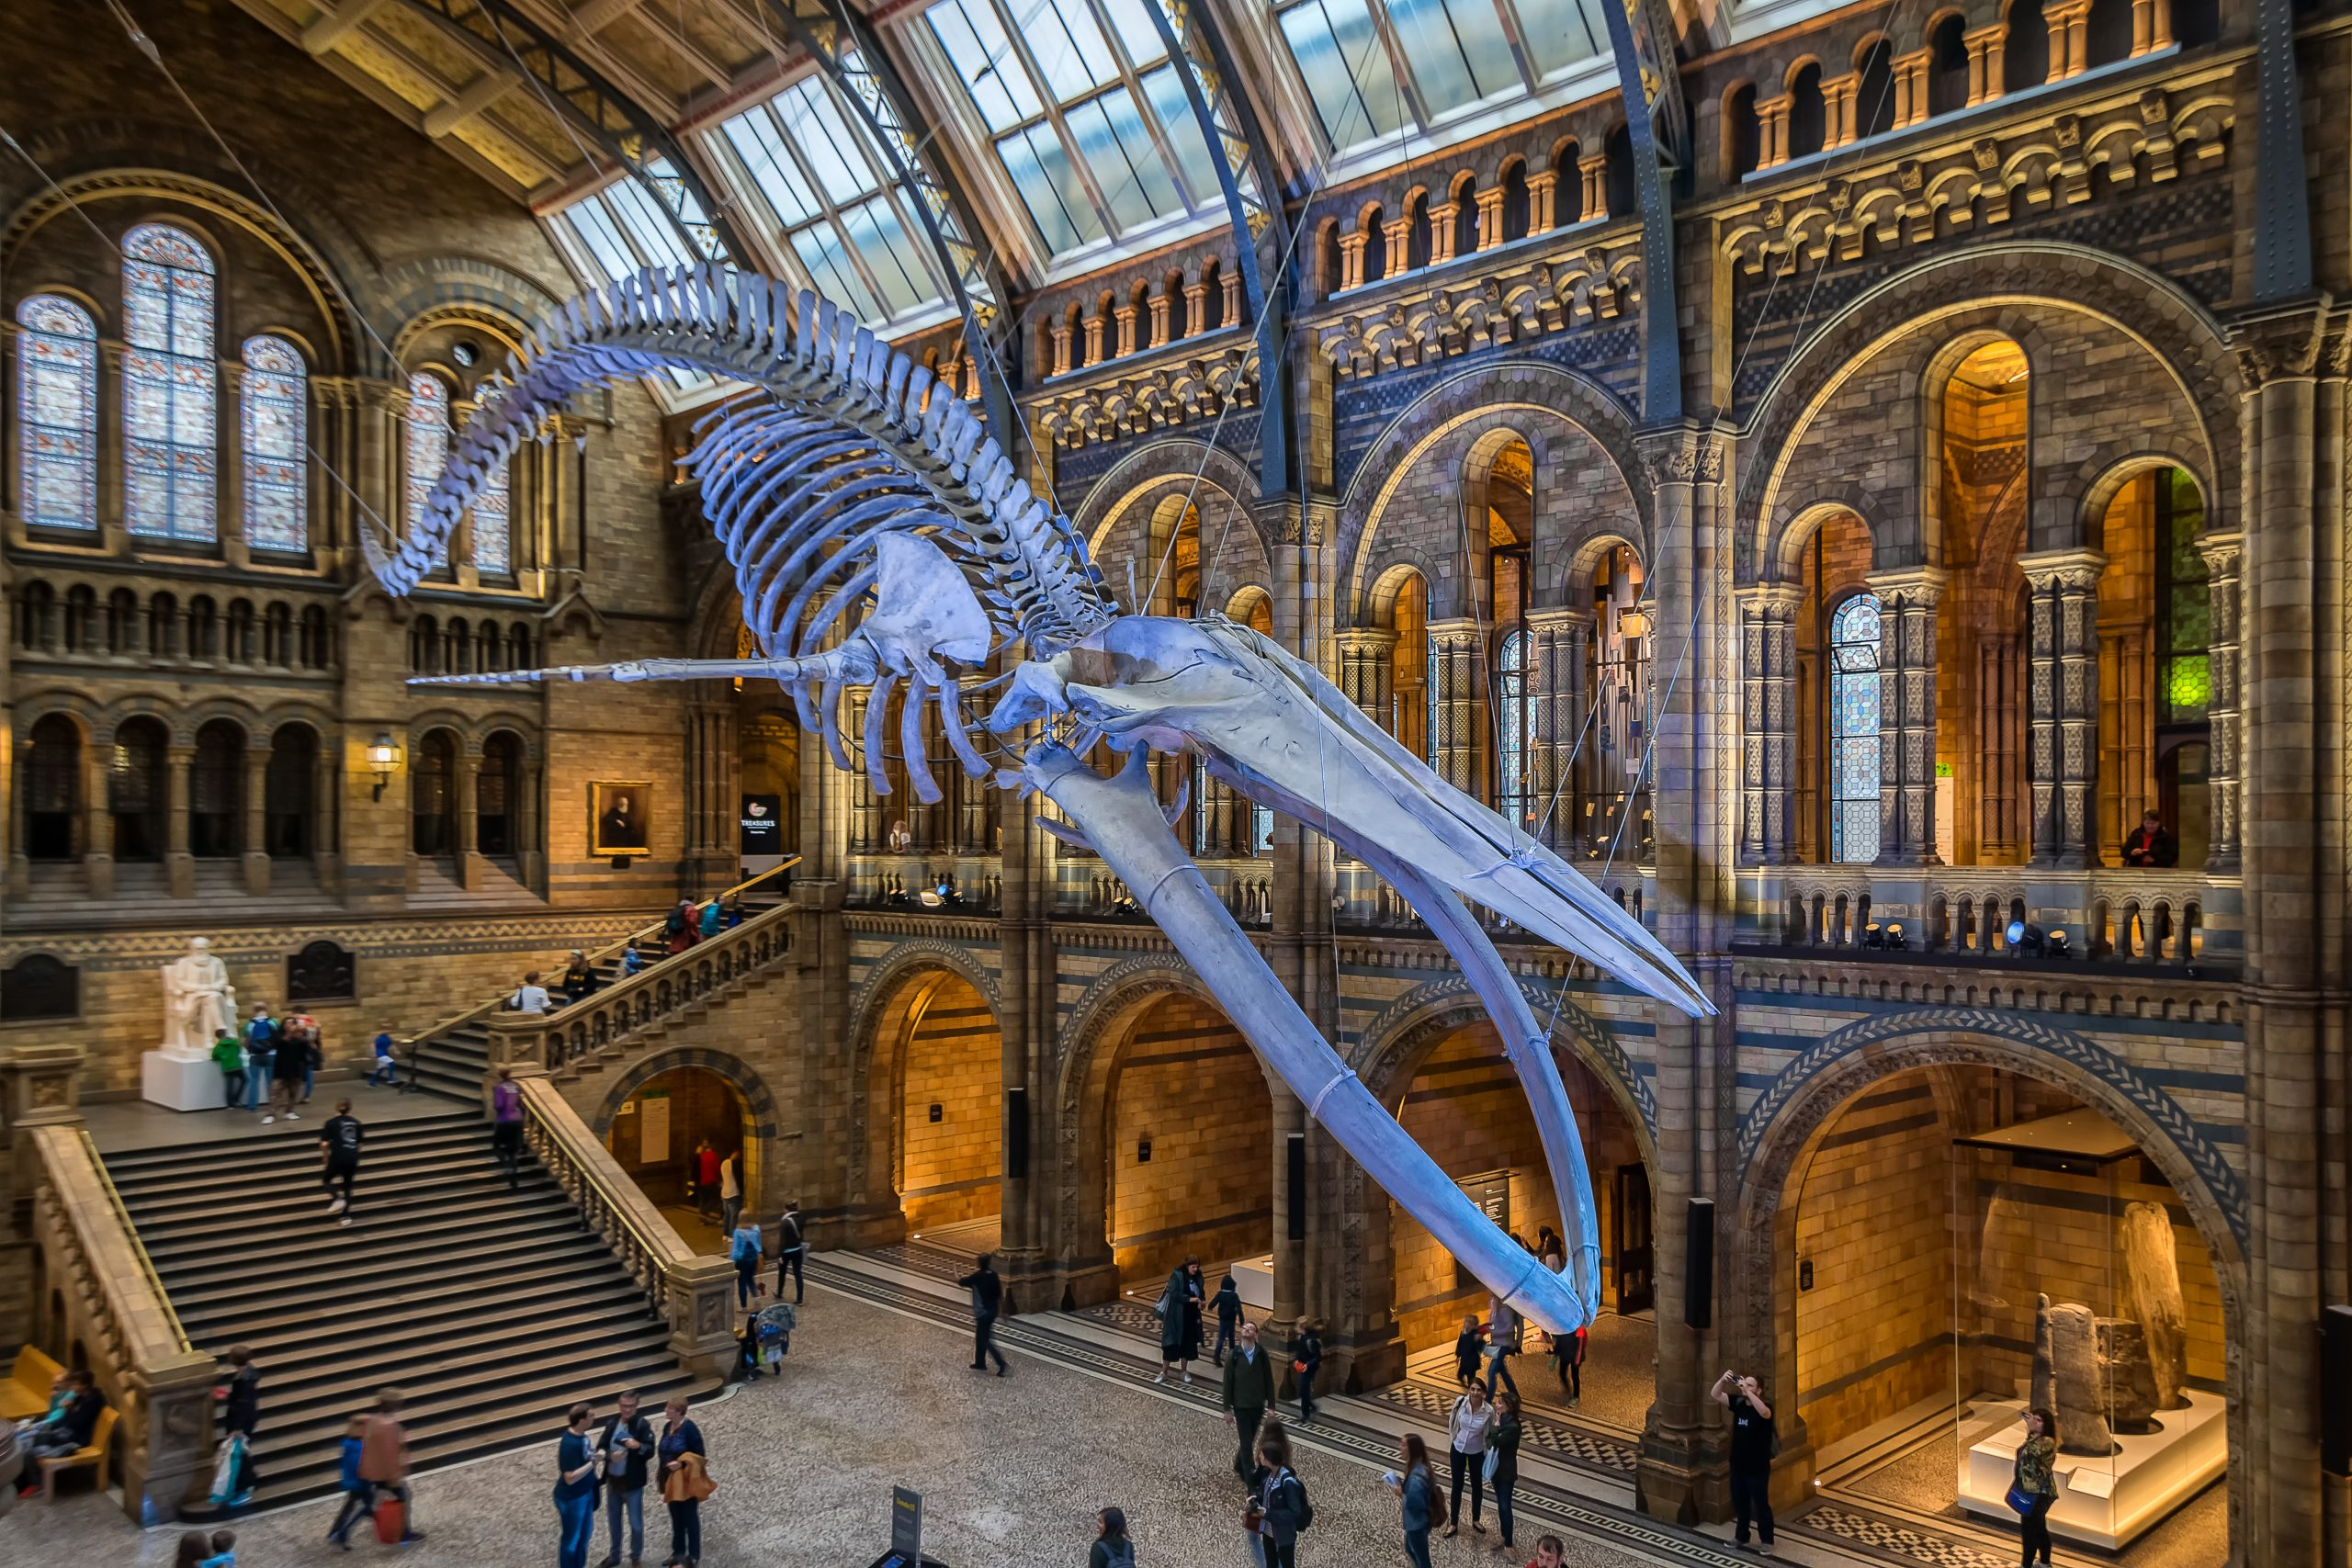 Blue Whale at the National History Museum